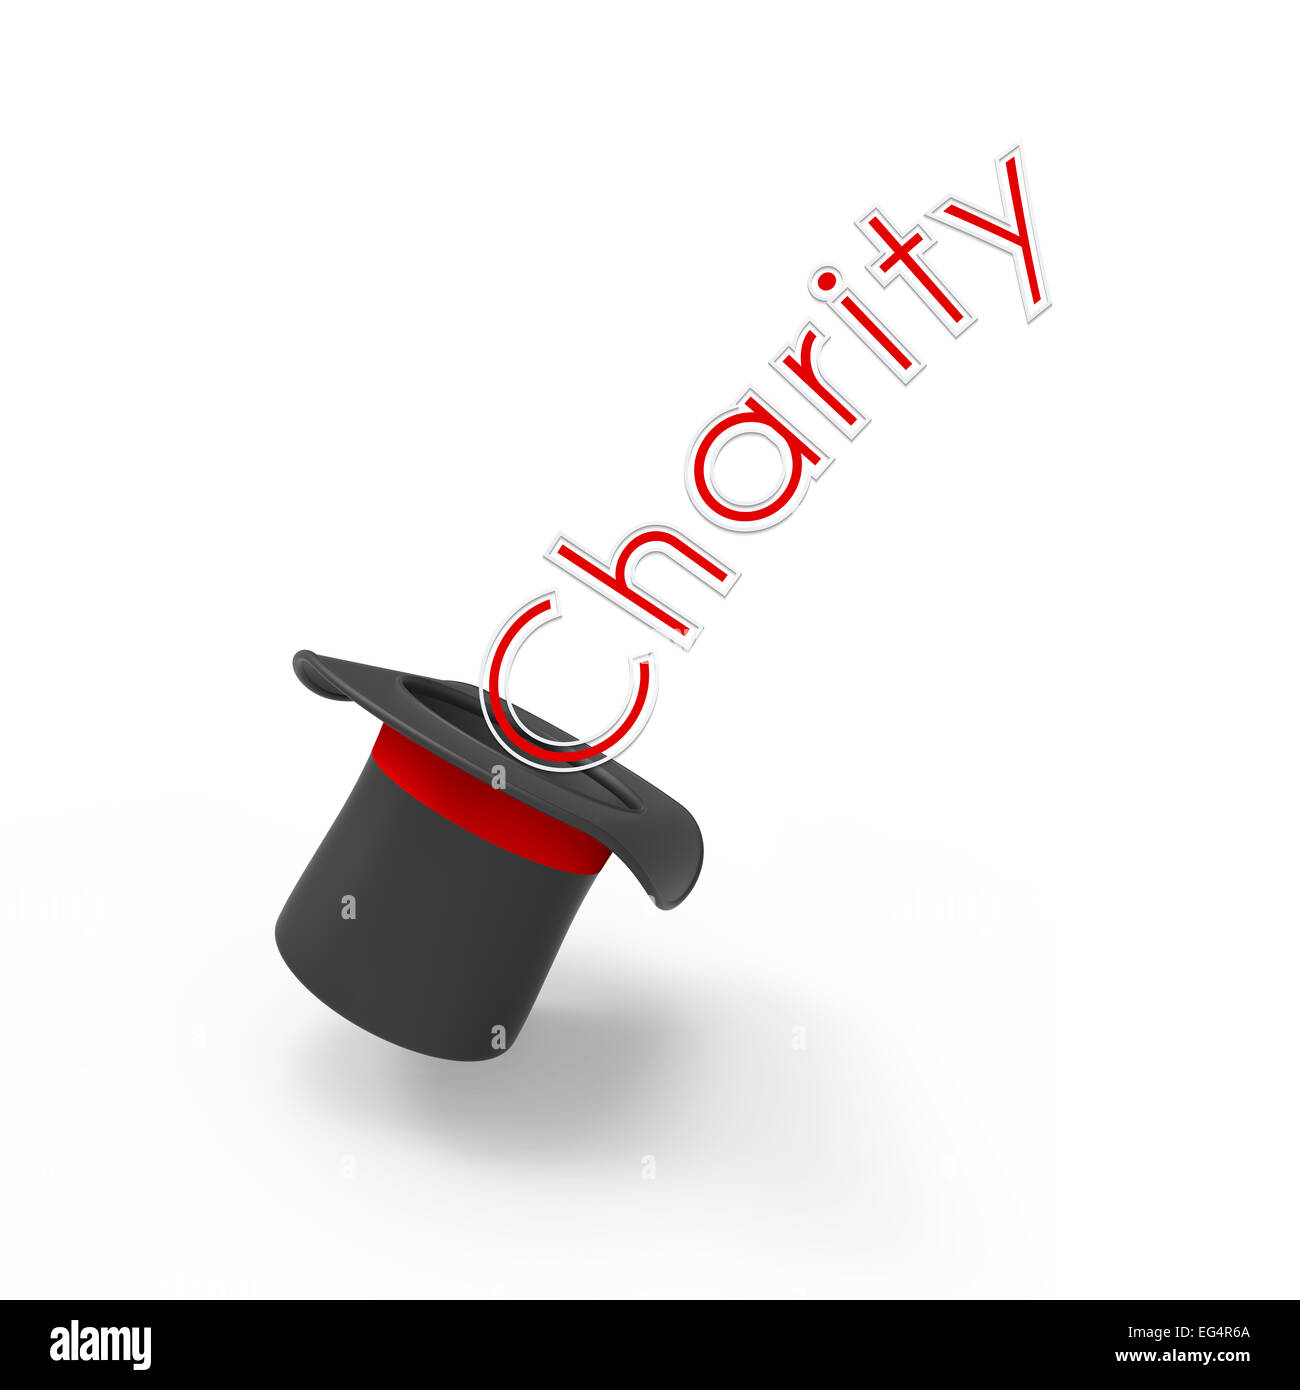 Three-dimensional illusionist's top hat on white background with pop-up caption 'Charity'. Concept of - Stock Image